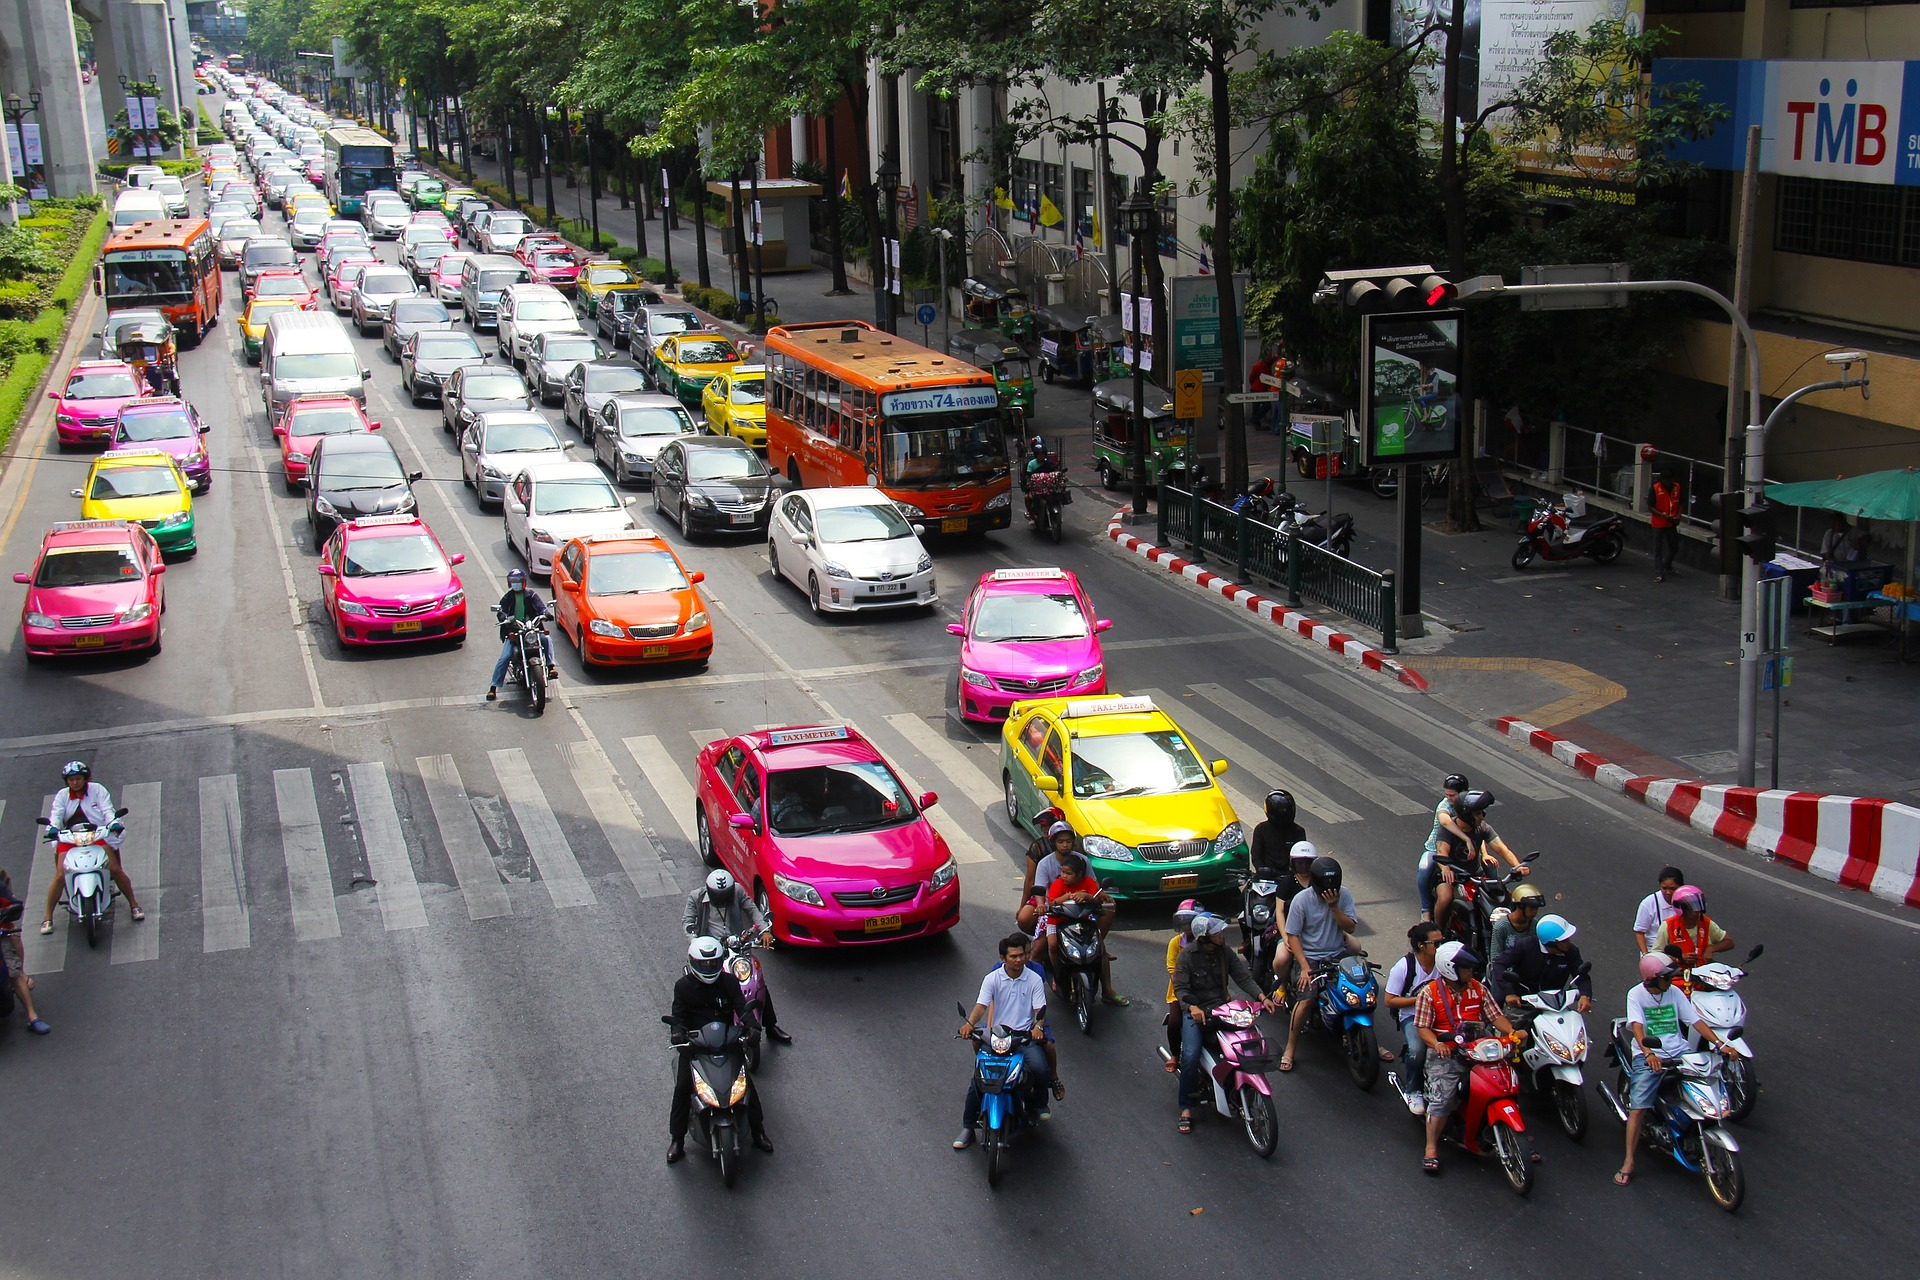 car-color-selection-street.jpg